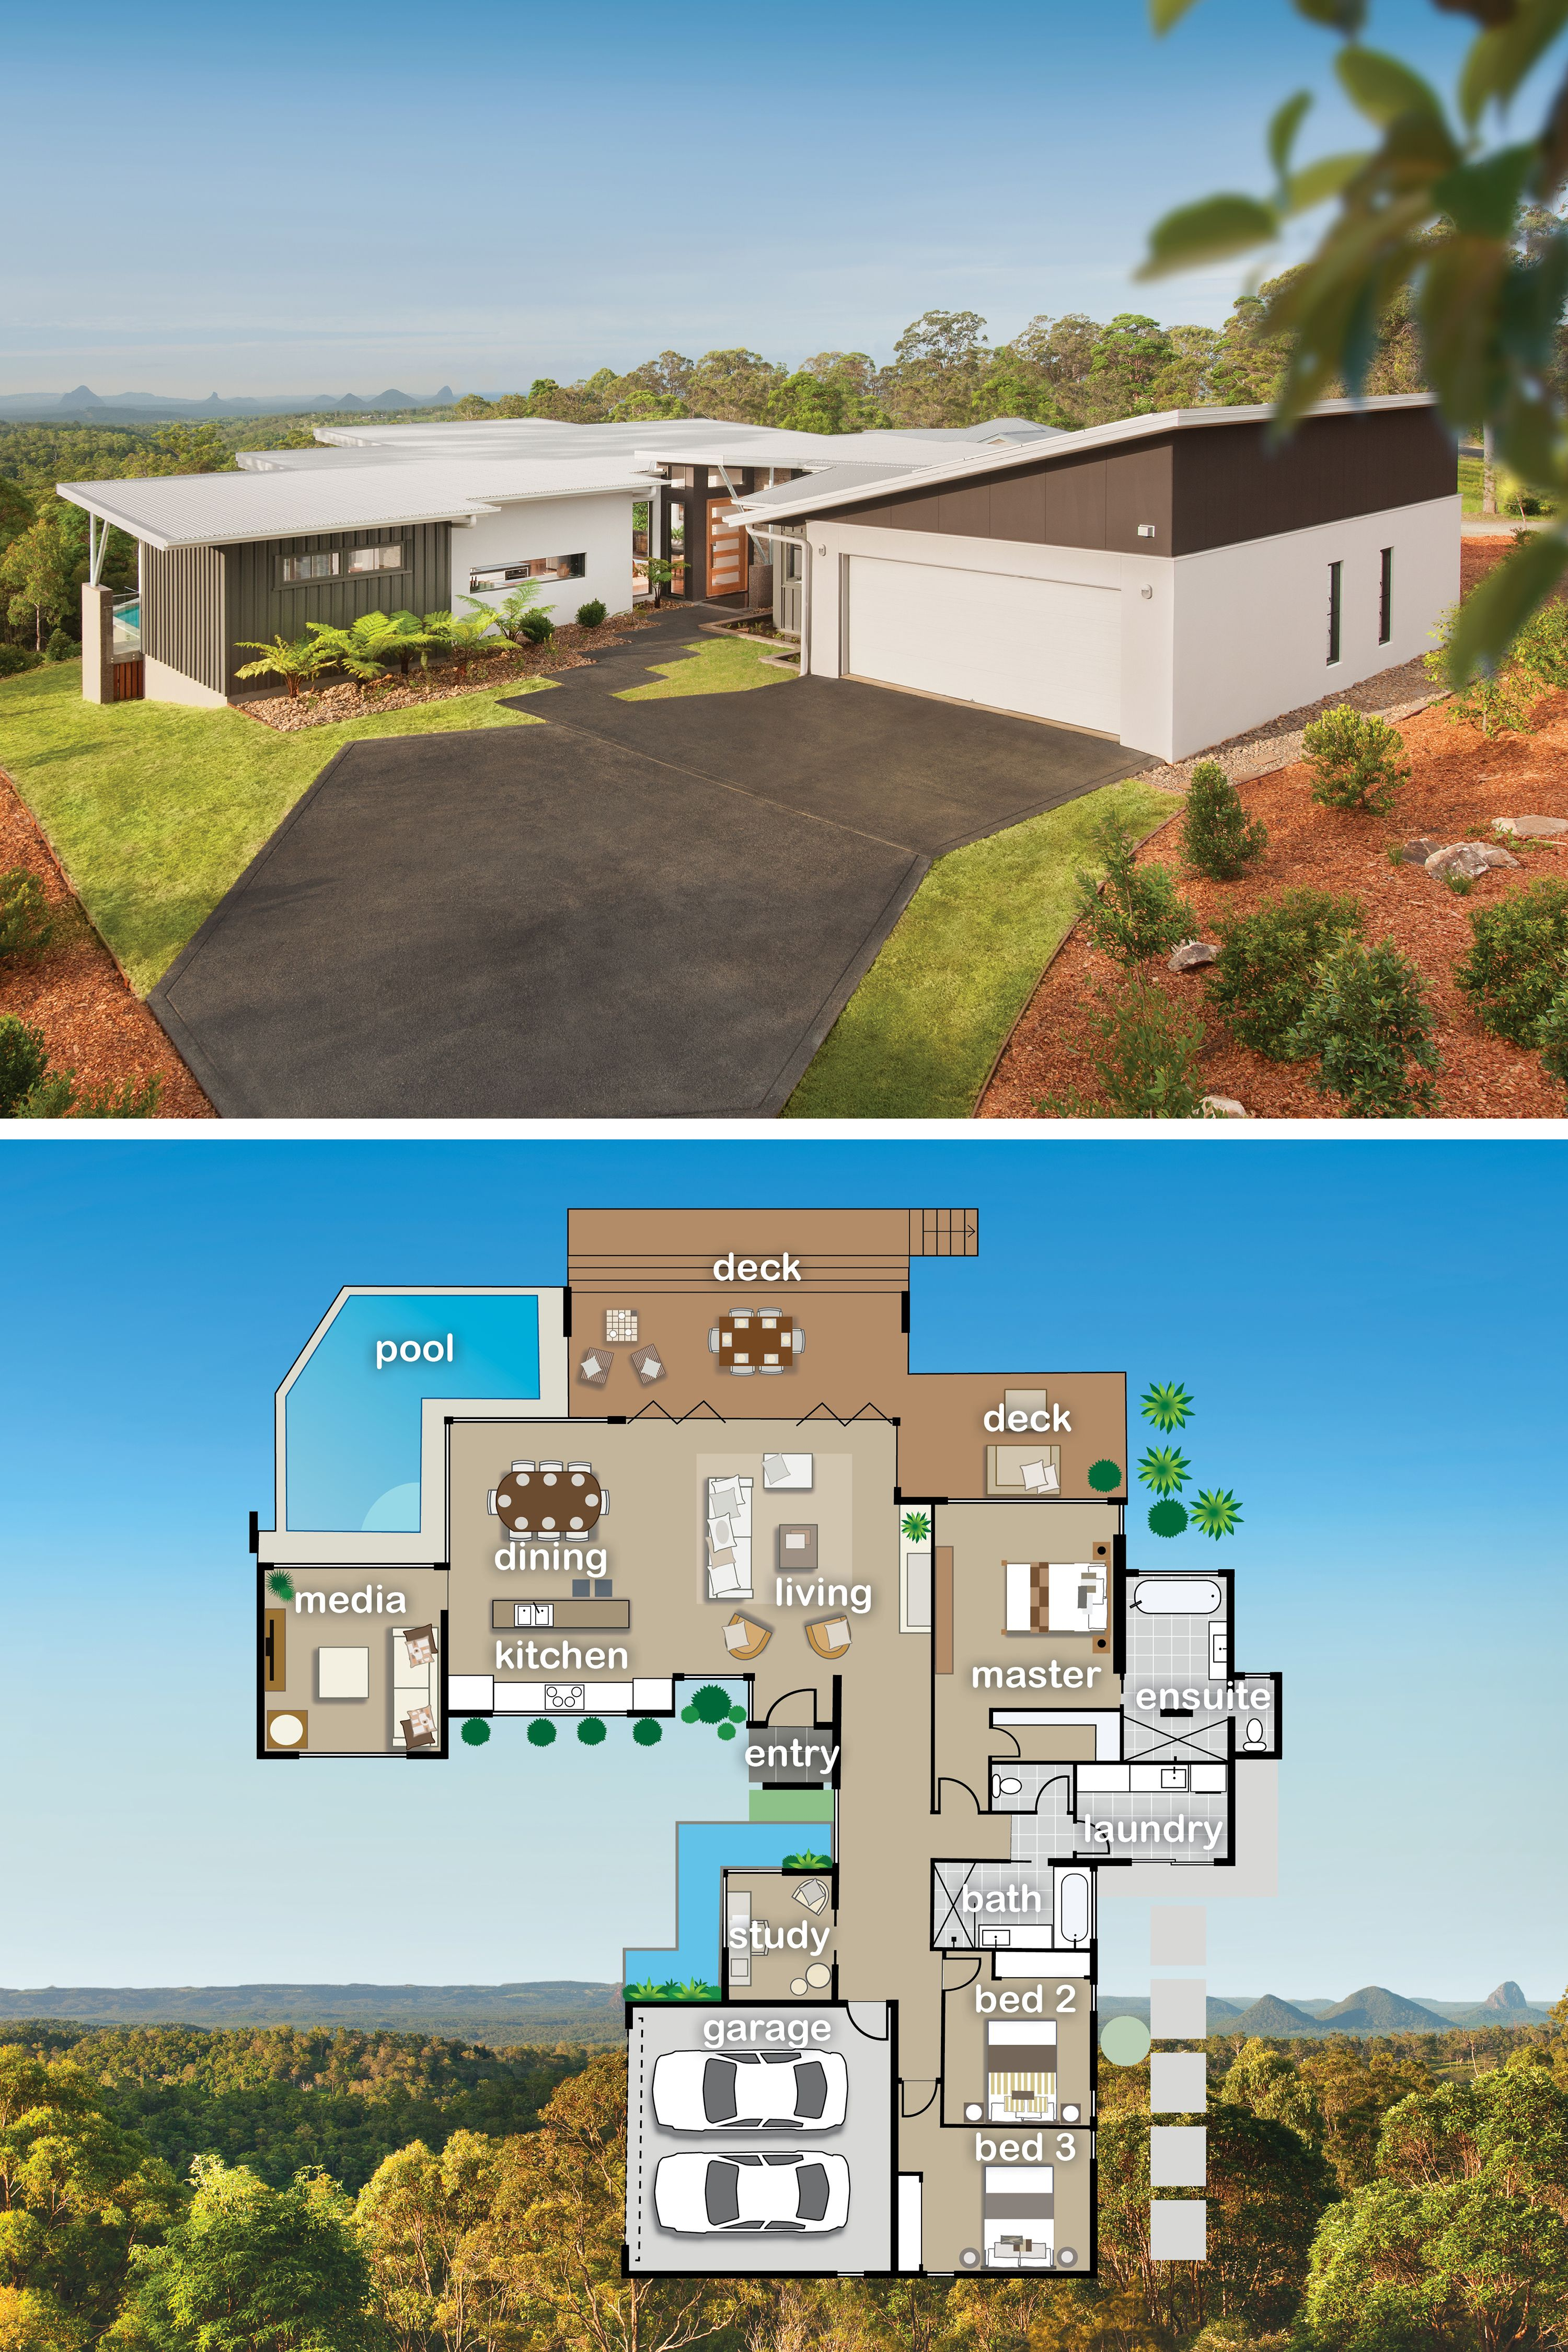 Floor Plan Designed To Maximize Views Off The Back Floorplan Sims House Plans Home Design Floor Plans Dream House Plans